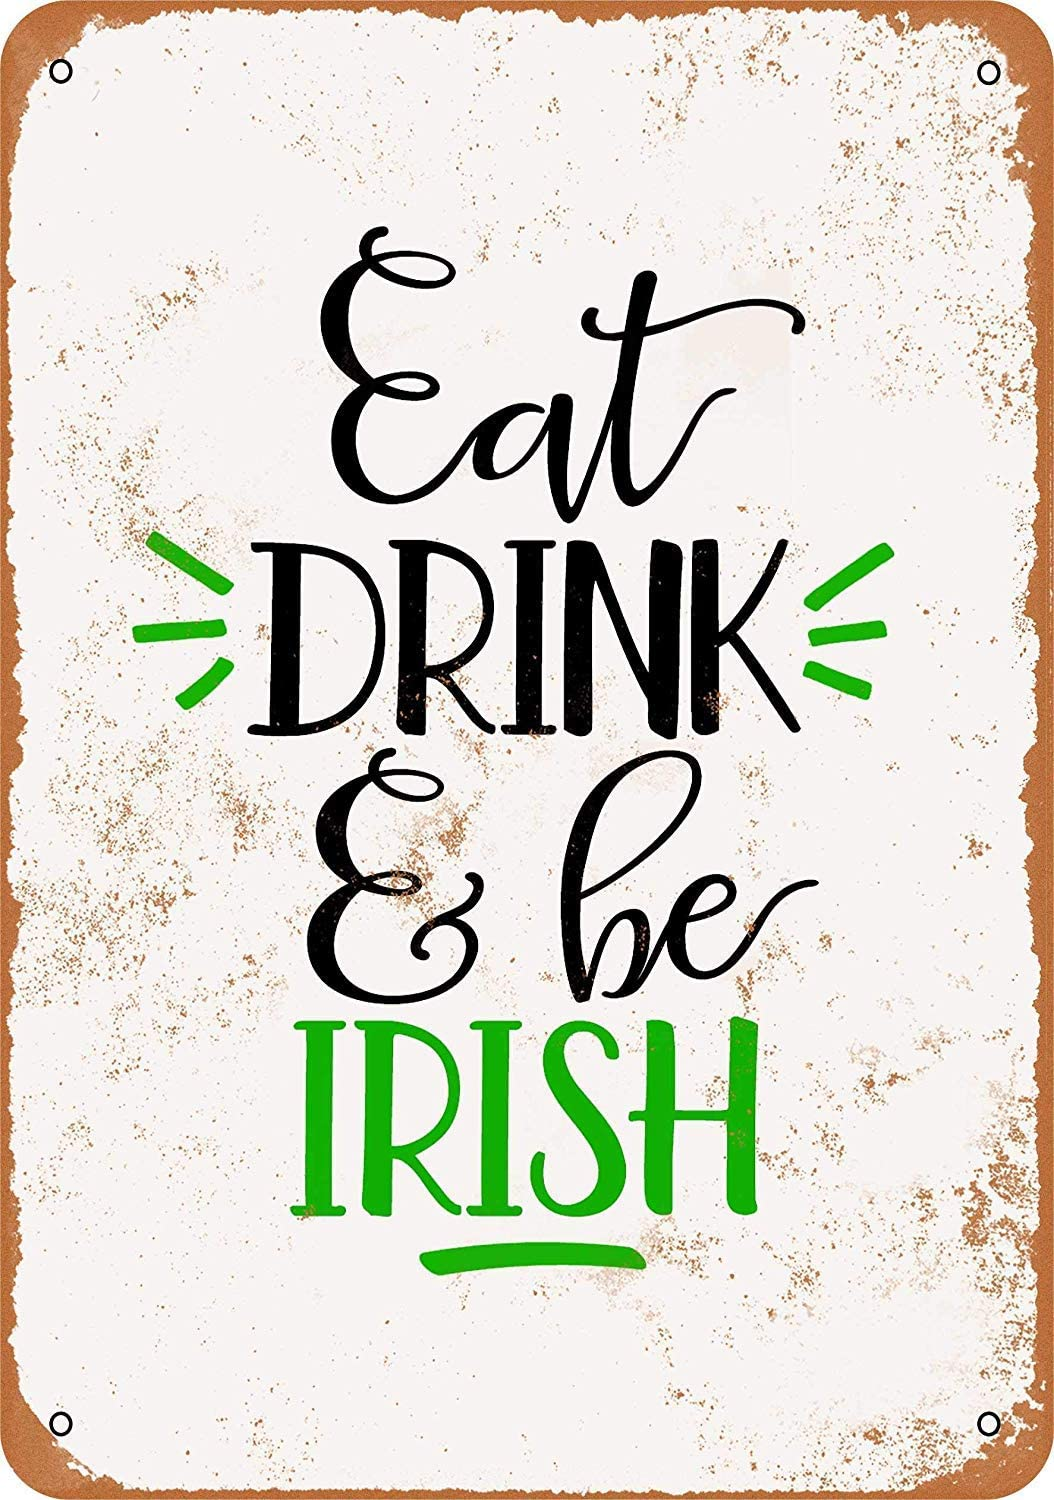 Treasun Metal Sign - Vintage Look Eat Drink and Be Irish - 8 x 12 Inches Tin Sign